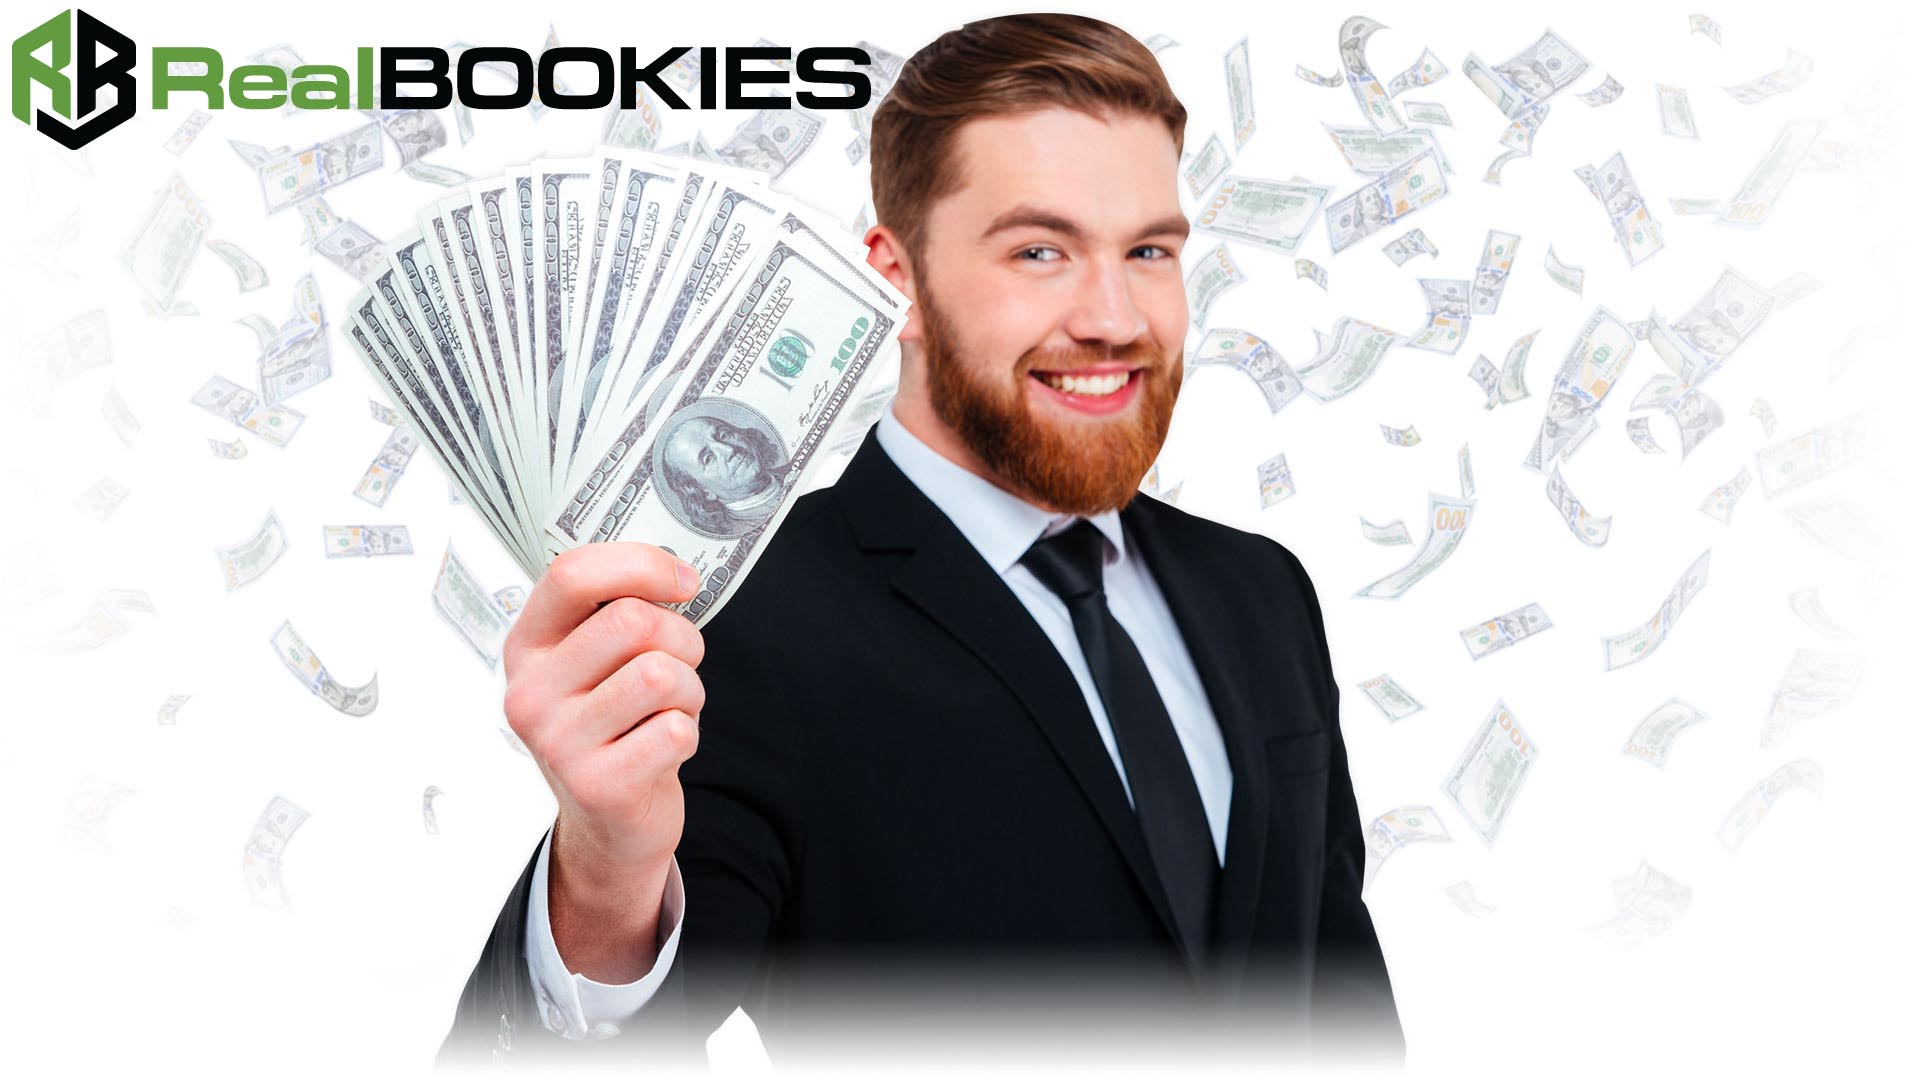 Common Bookie Questions For Pay Per Head Services